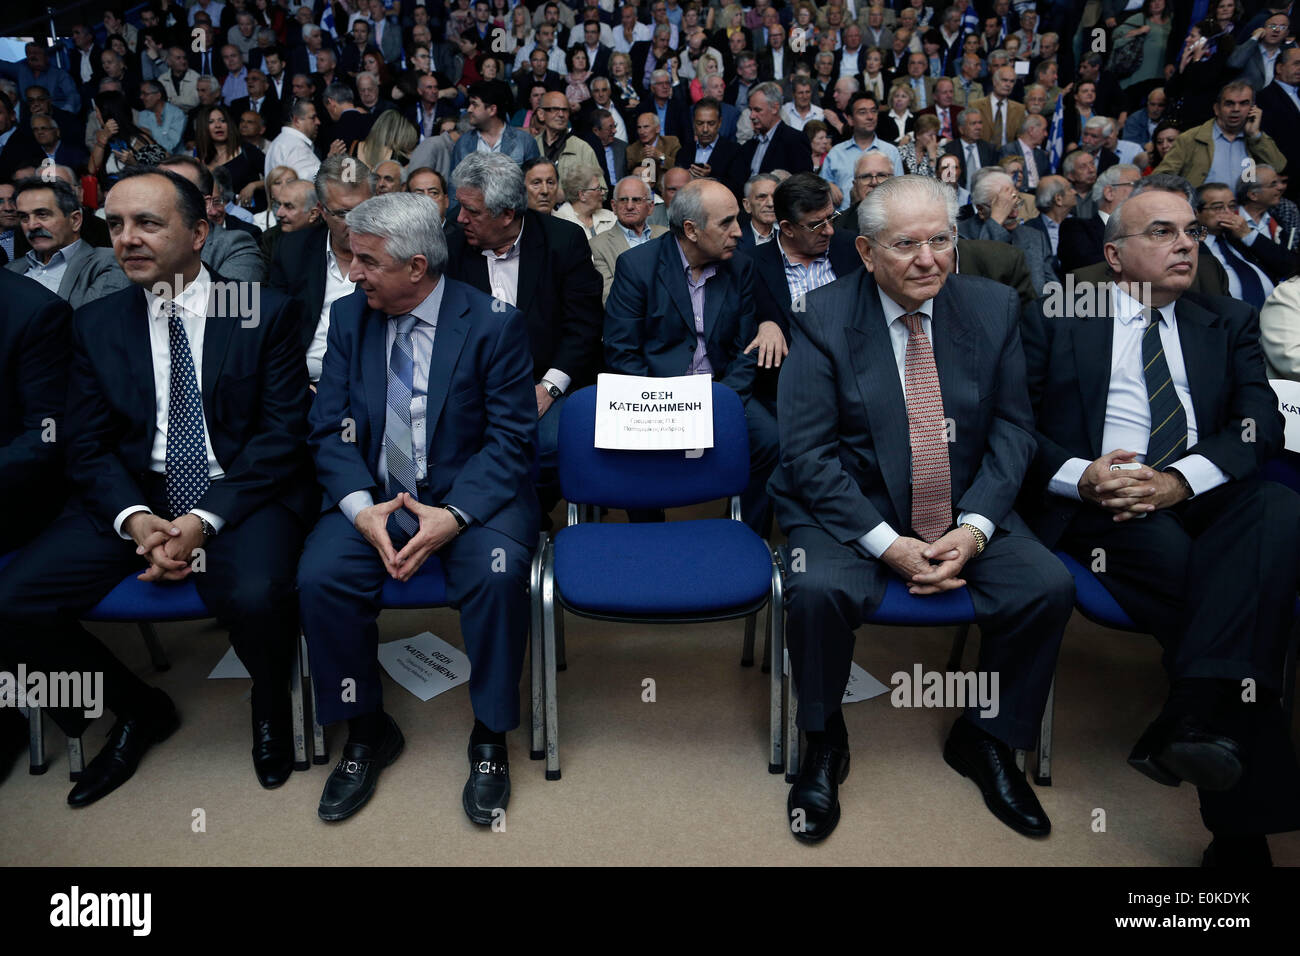 Thessaloniki, Greece . 15th May, 2014. Greek Prime Minister Antonis Samaras delivers pre-election speech to New Democracy party members and supporters in Thessaloniki, Greece on May 15, 2014. Credit:  Konstantinos Tsakalidis/Alamy Live News - Stock Image